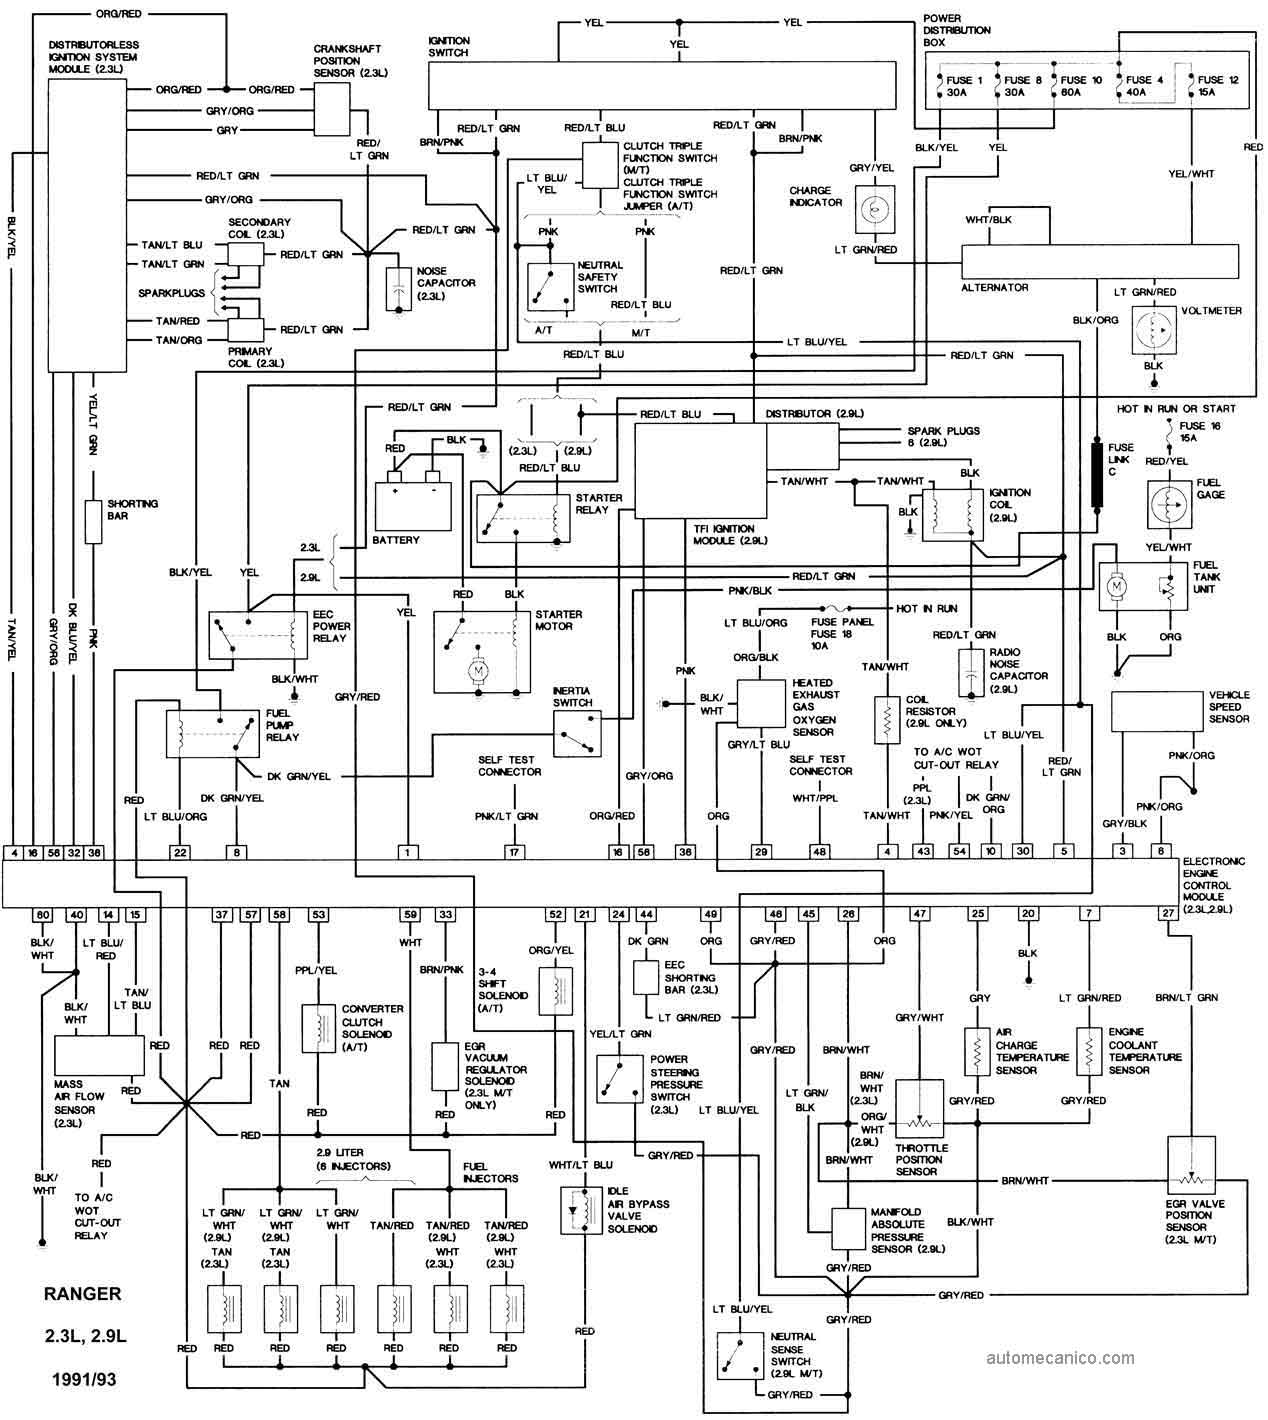 allison transmission 2000 diagrama de cableado